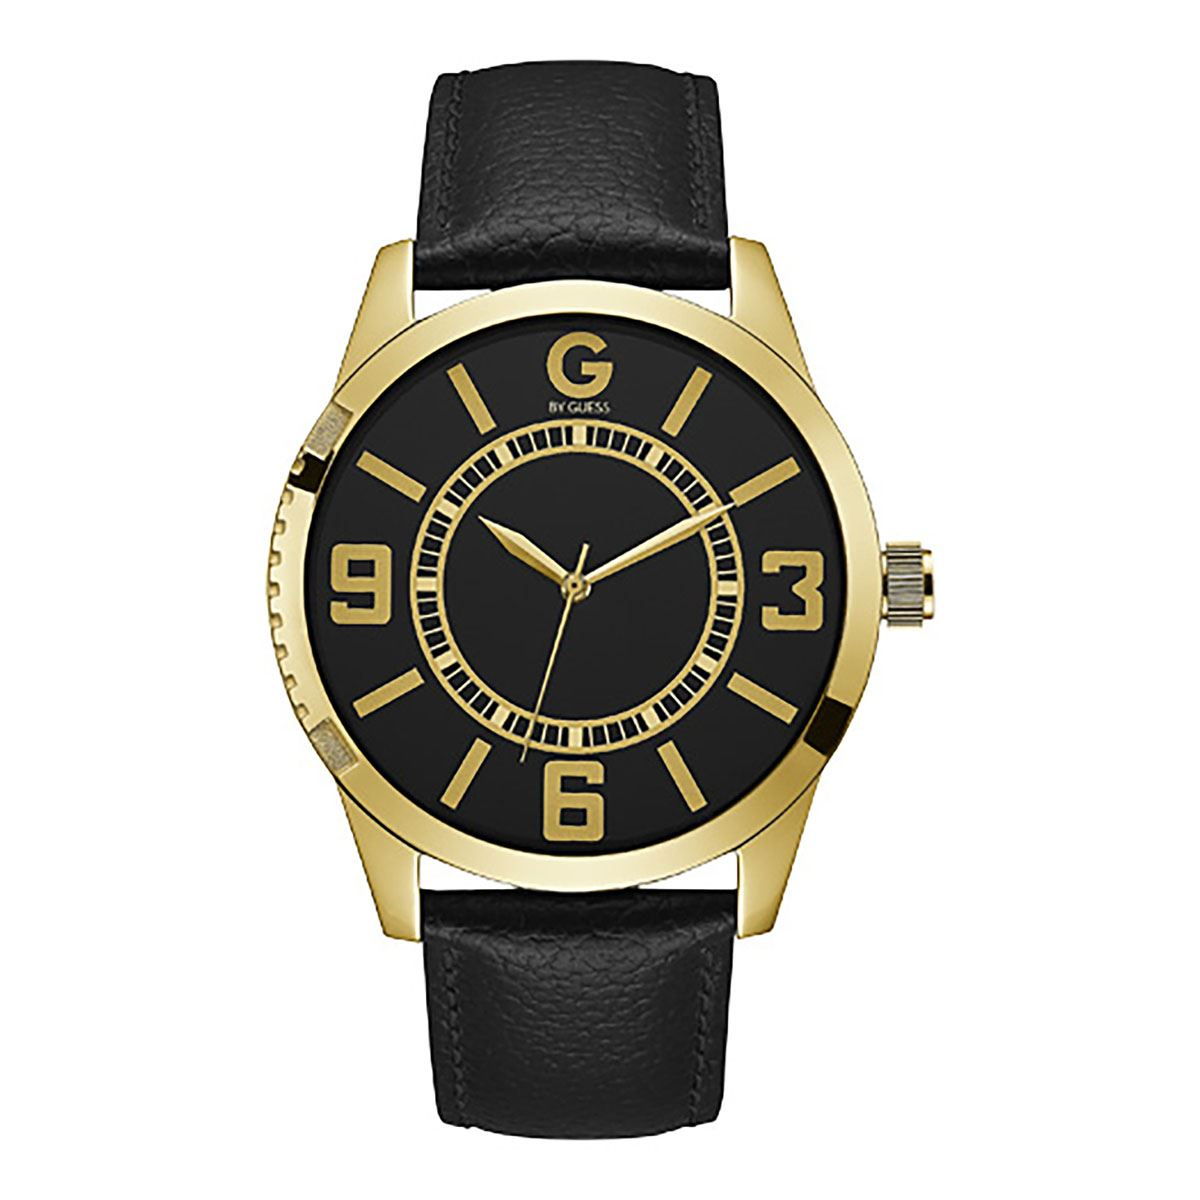 Reloj  g by guess caballero ft2 g64038g1  - Sanborns